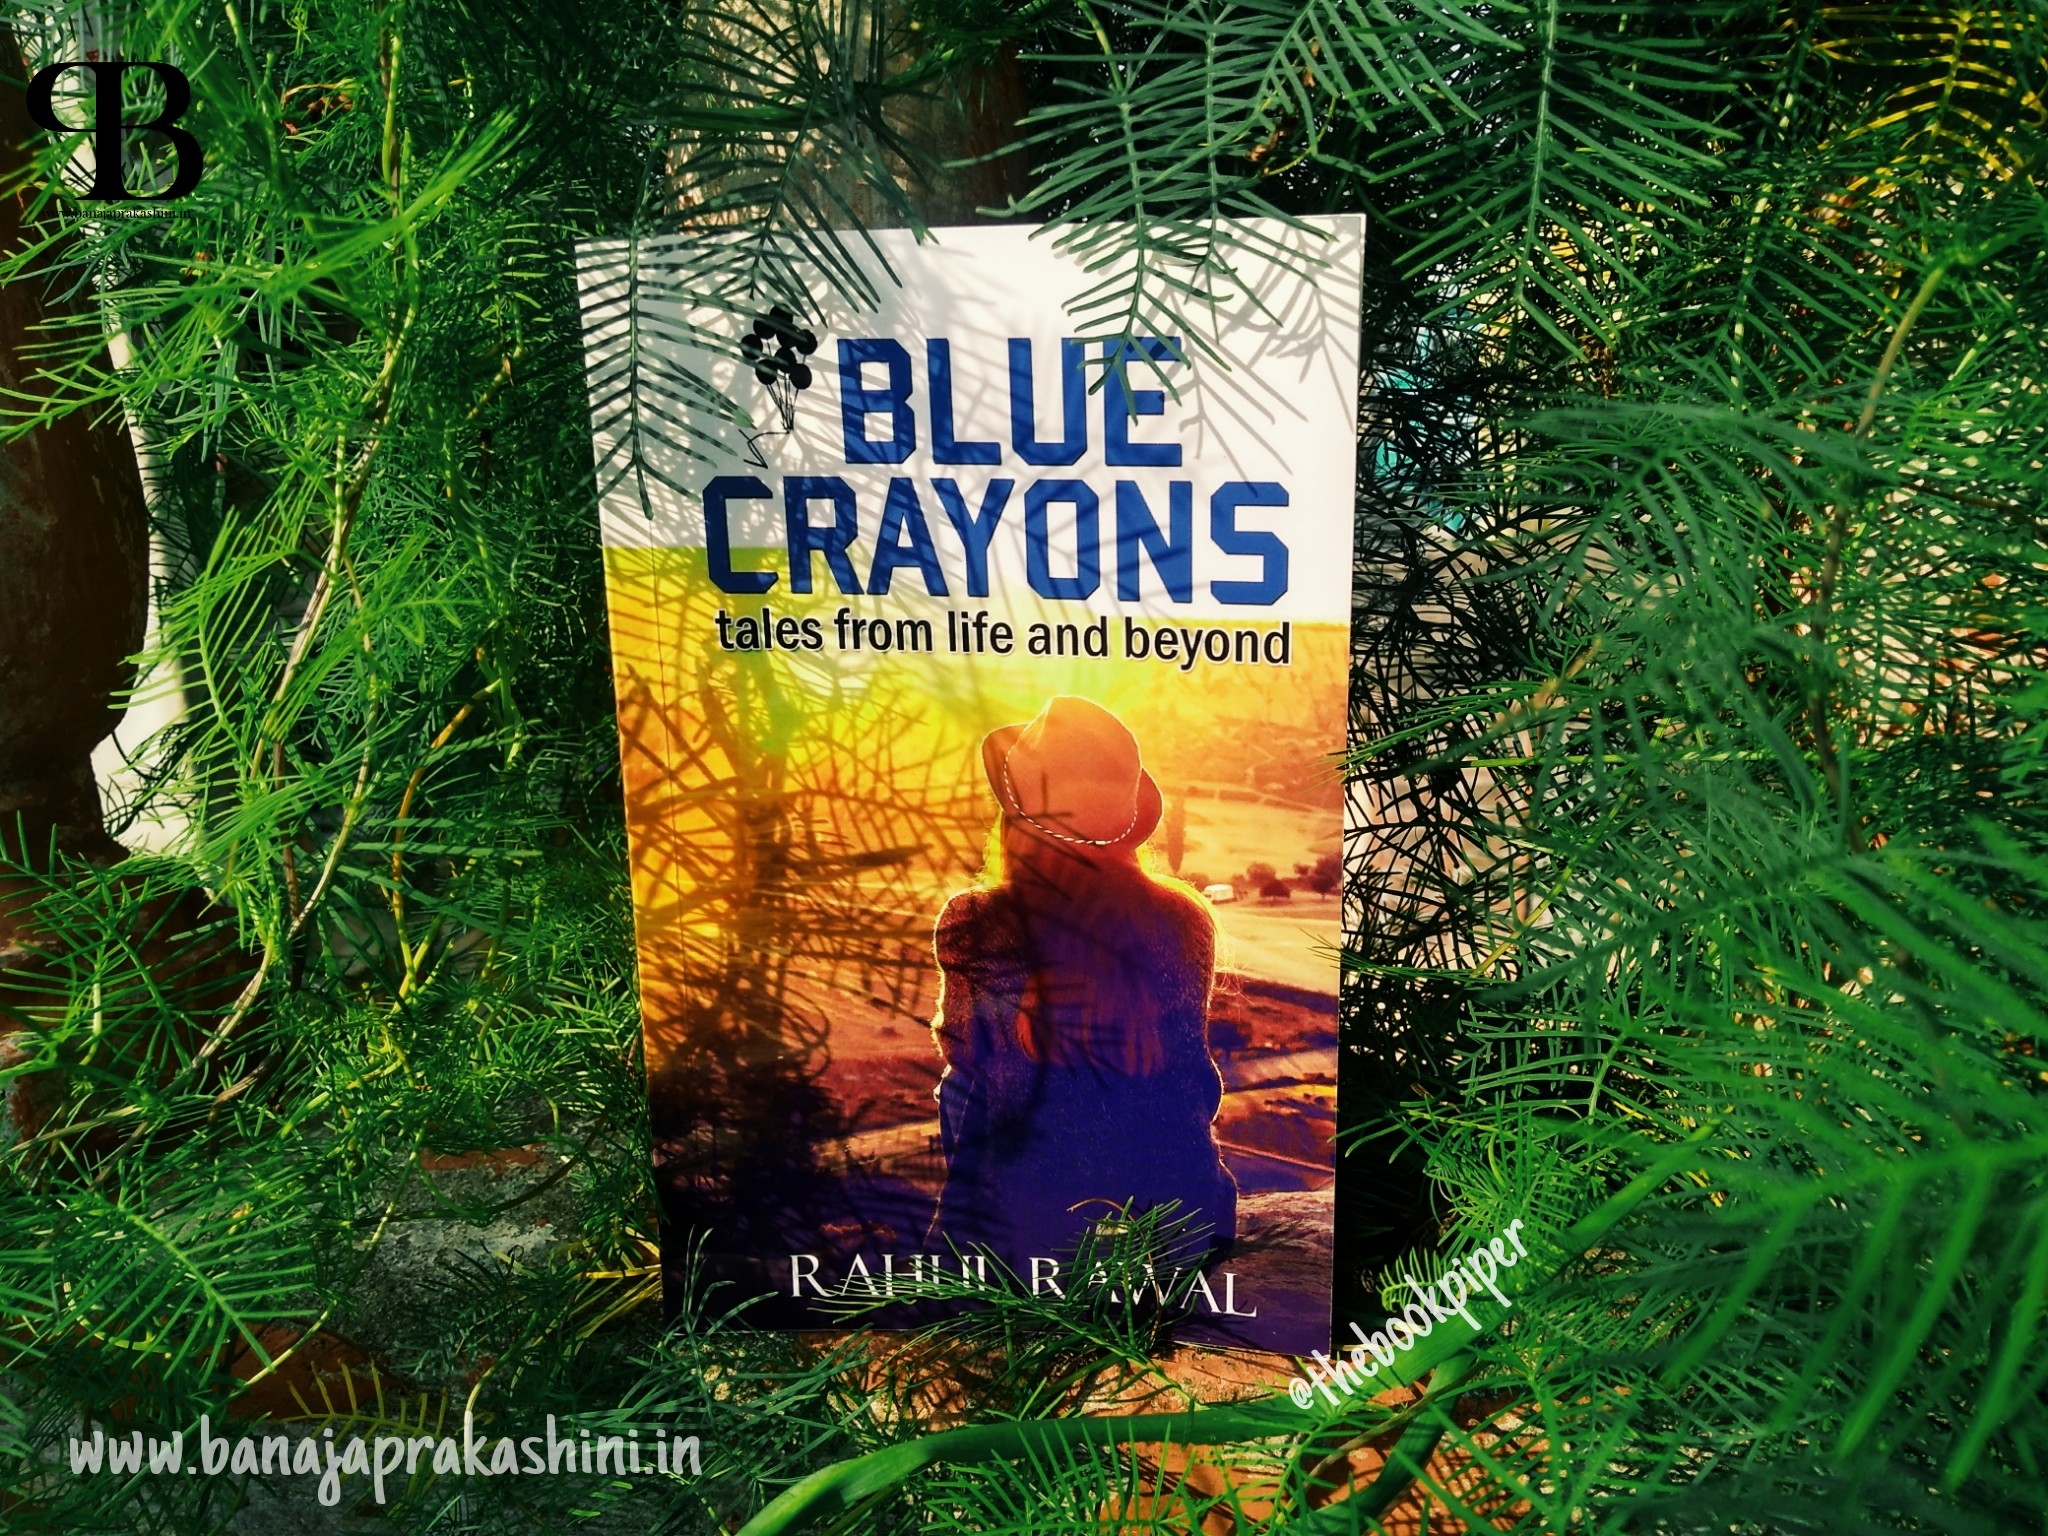 Review Pen: Blue Crayons by Rahul Rawal